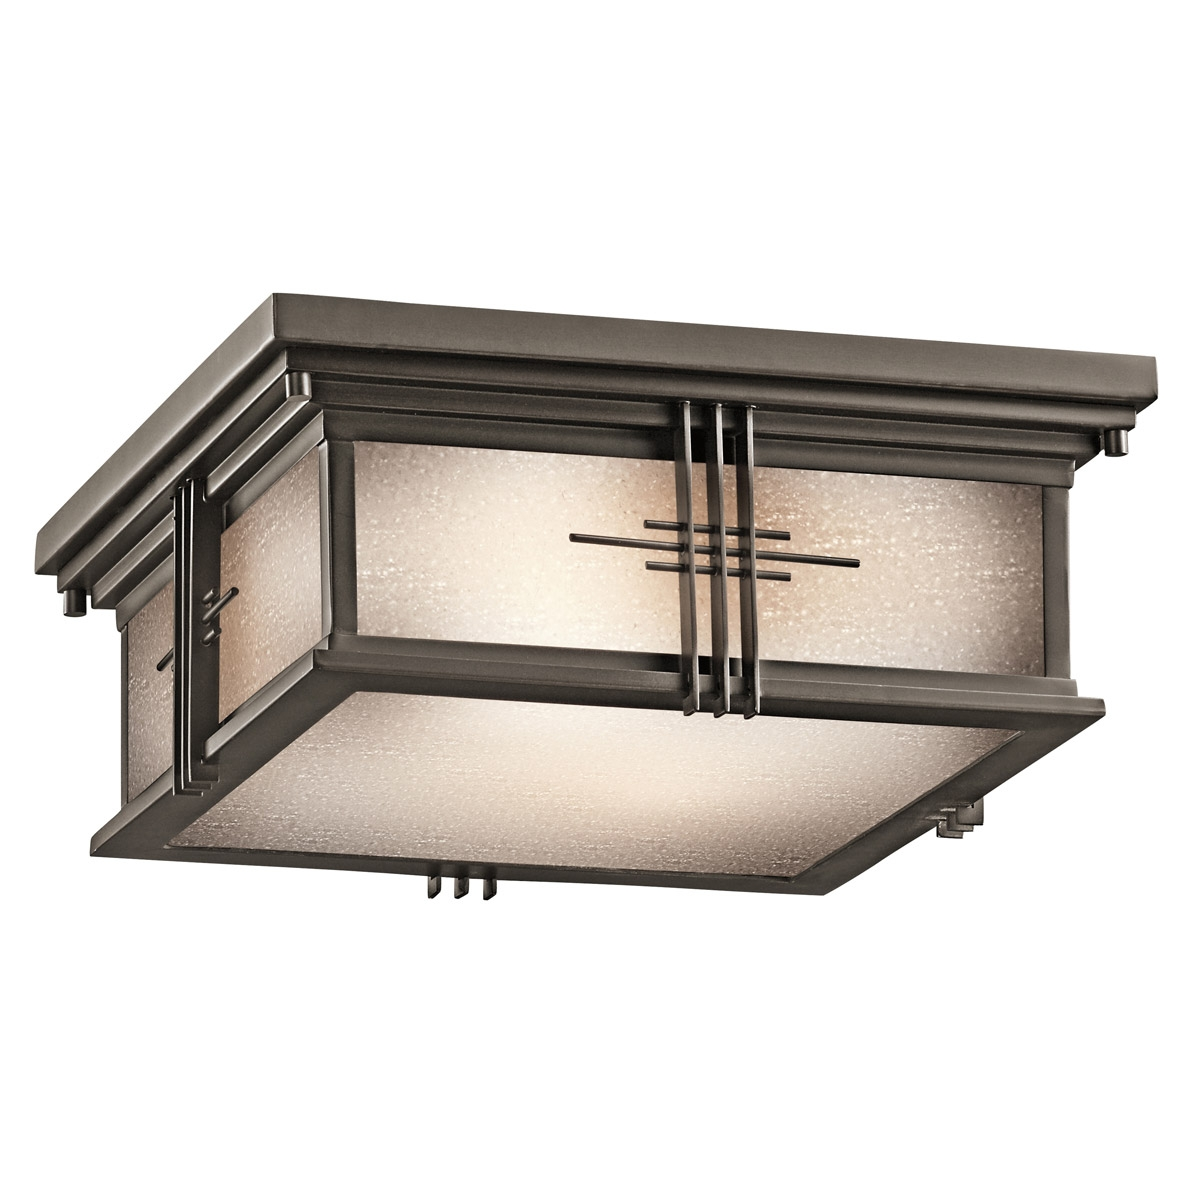 Mission Ceiling Light Fixture